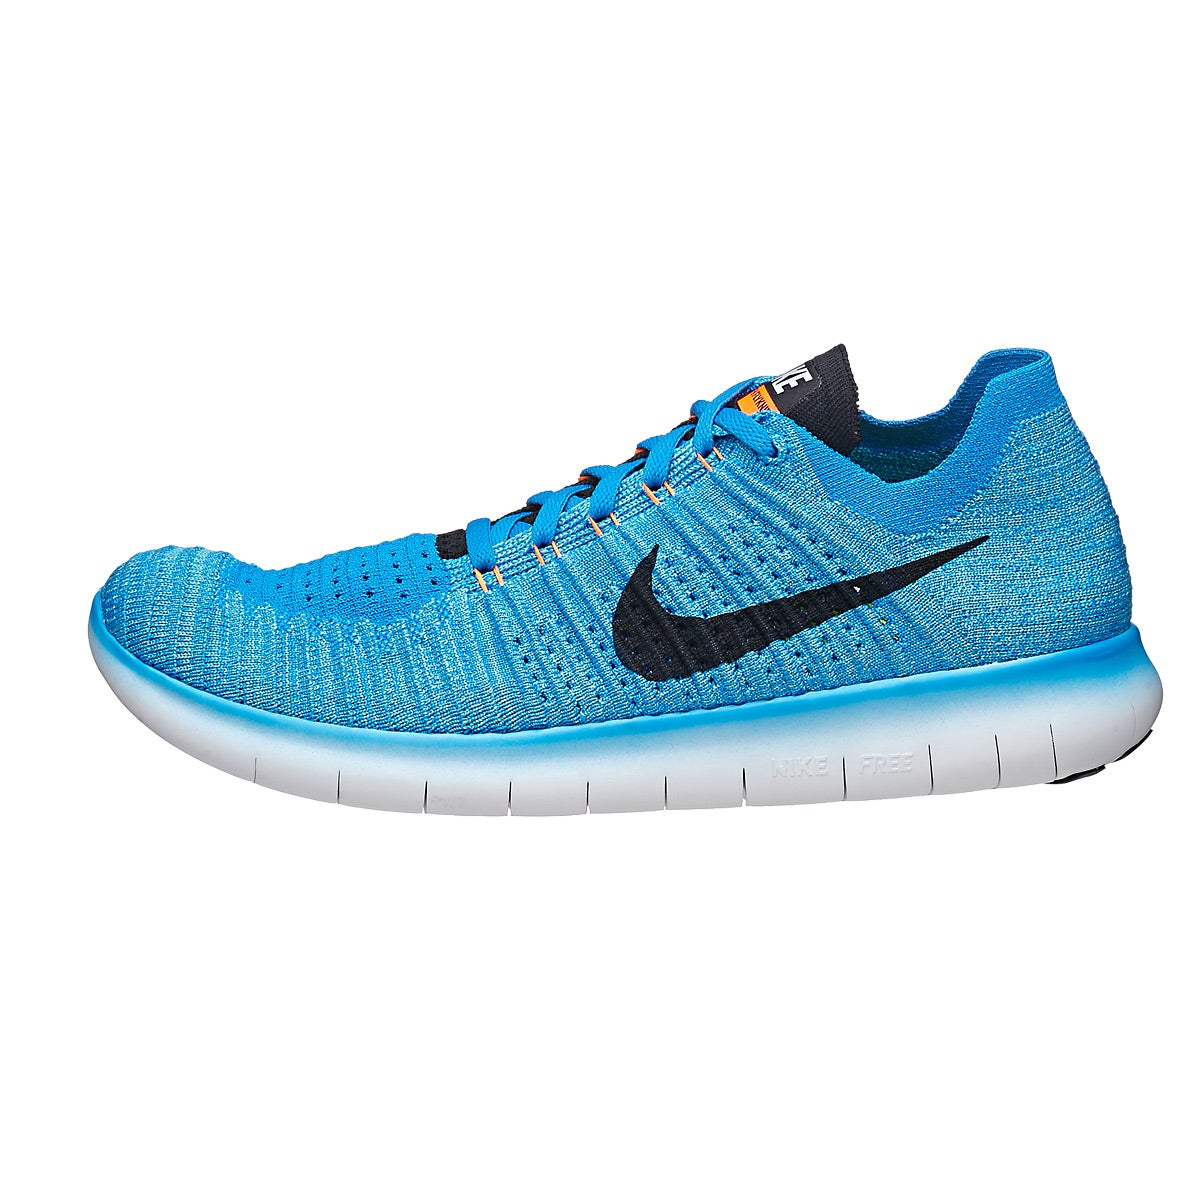 Nike Mens Shoes Clothing and Accessories Nikecom UK